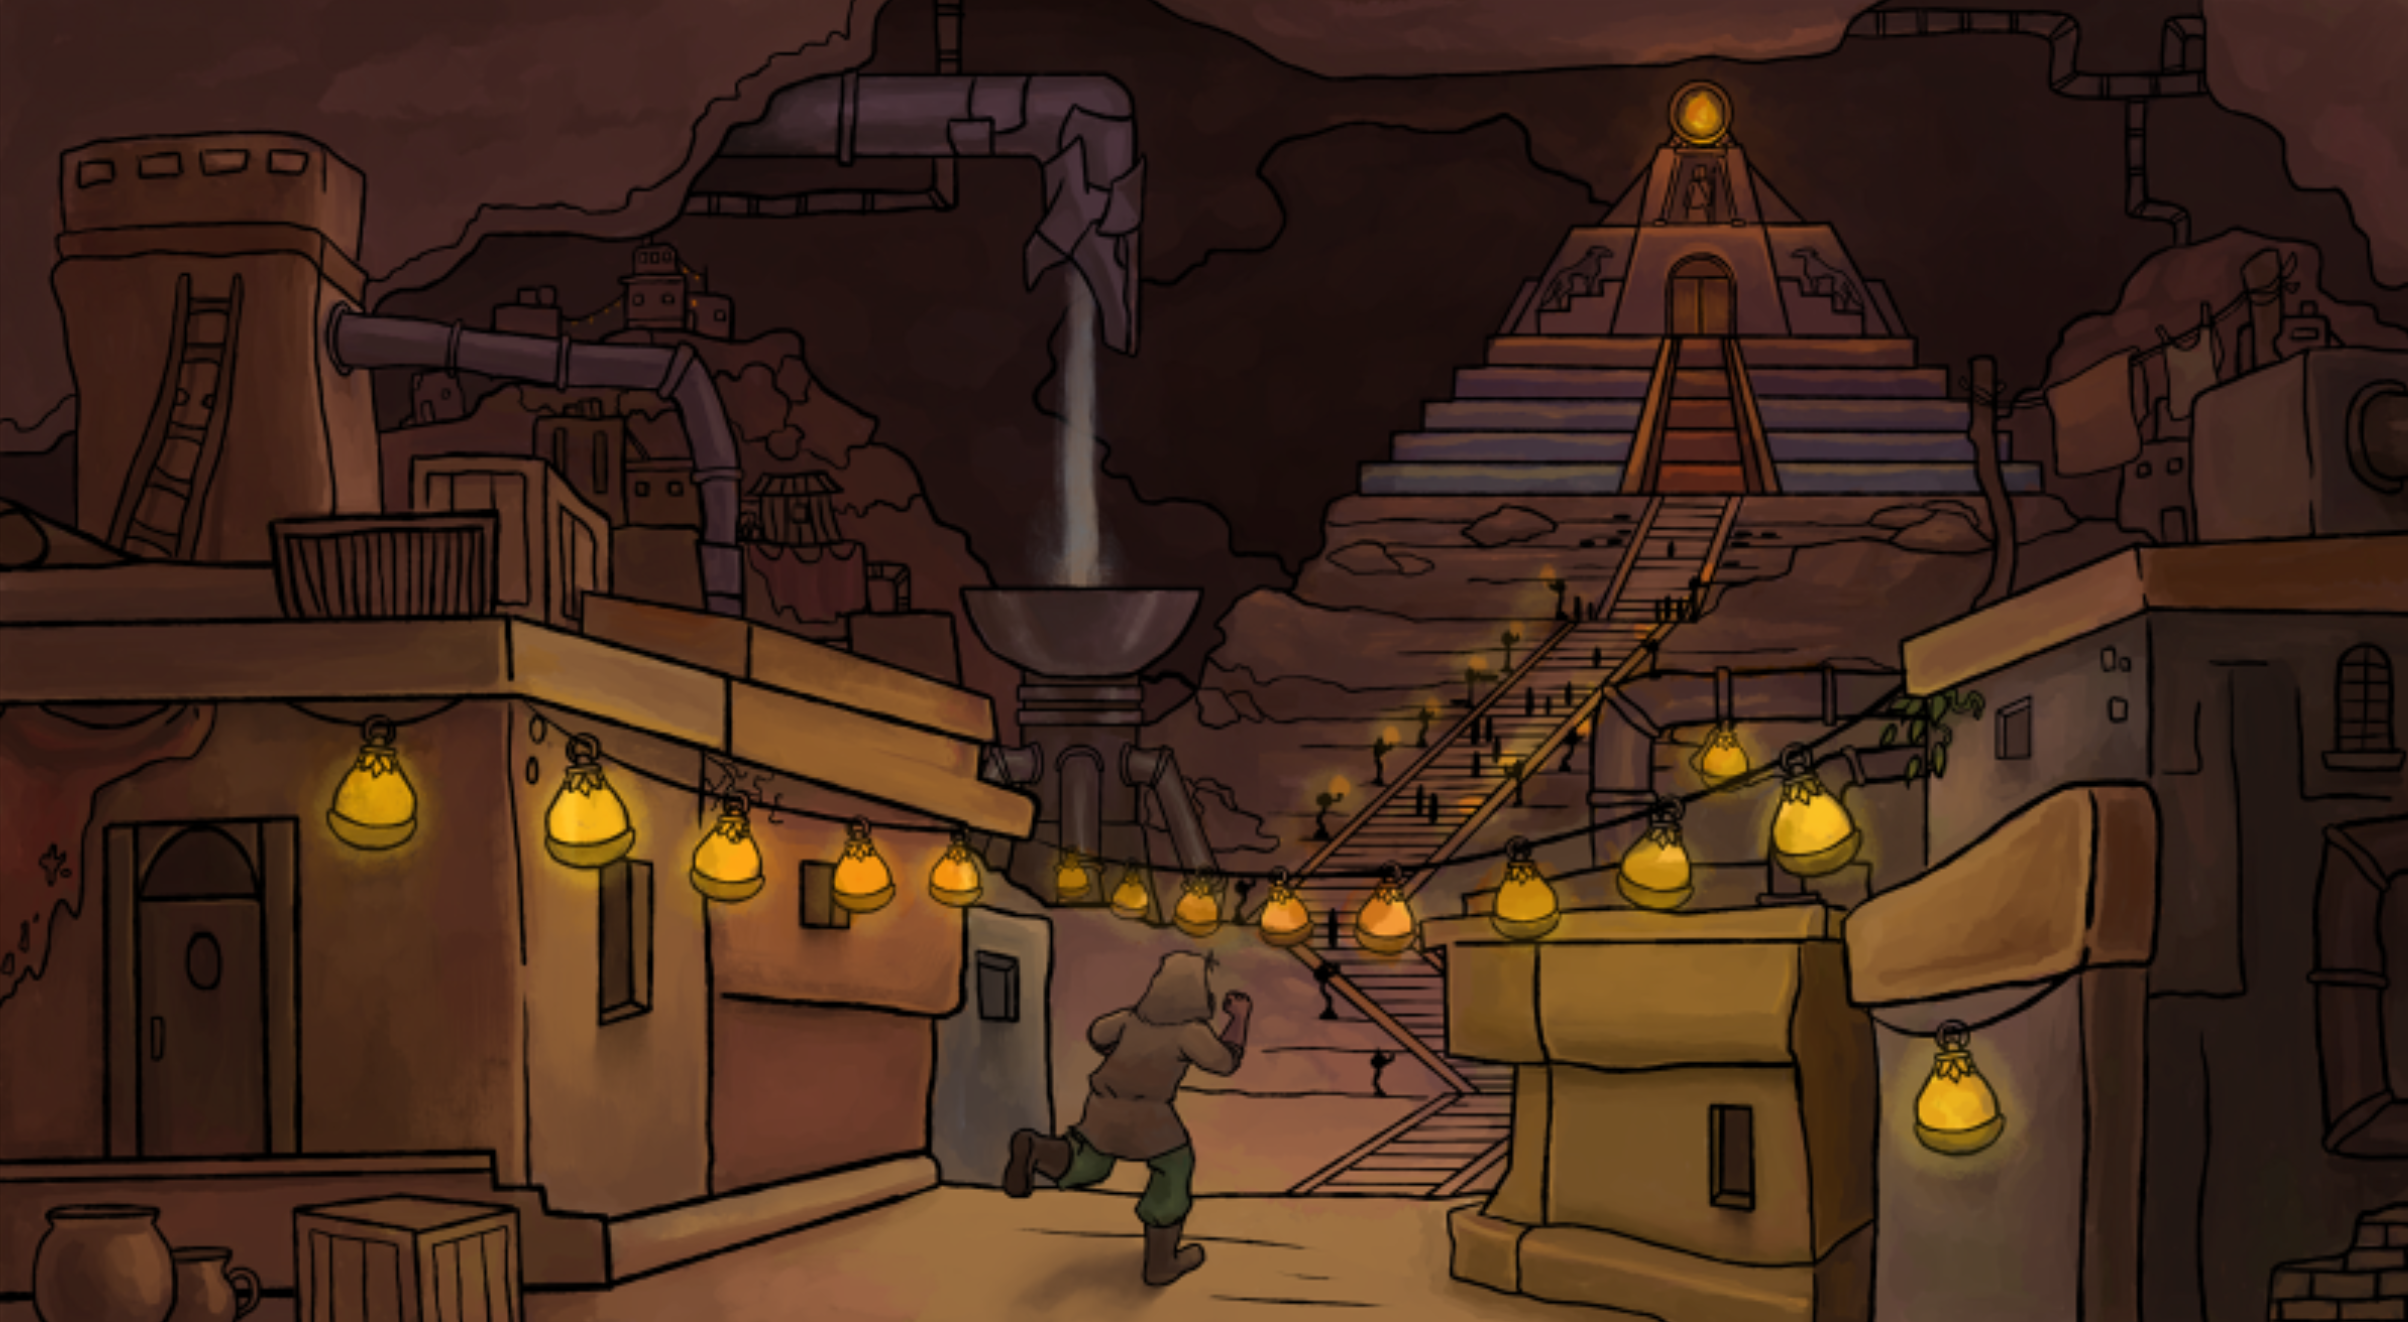 Elfscape city inspired by Mesopotamian culture